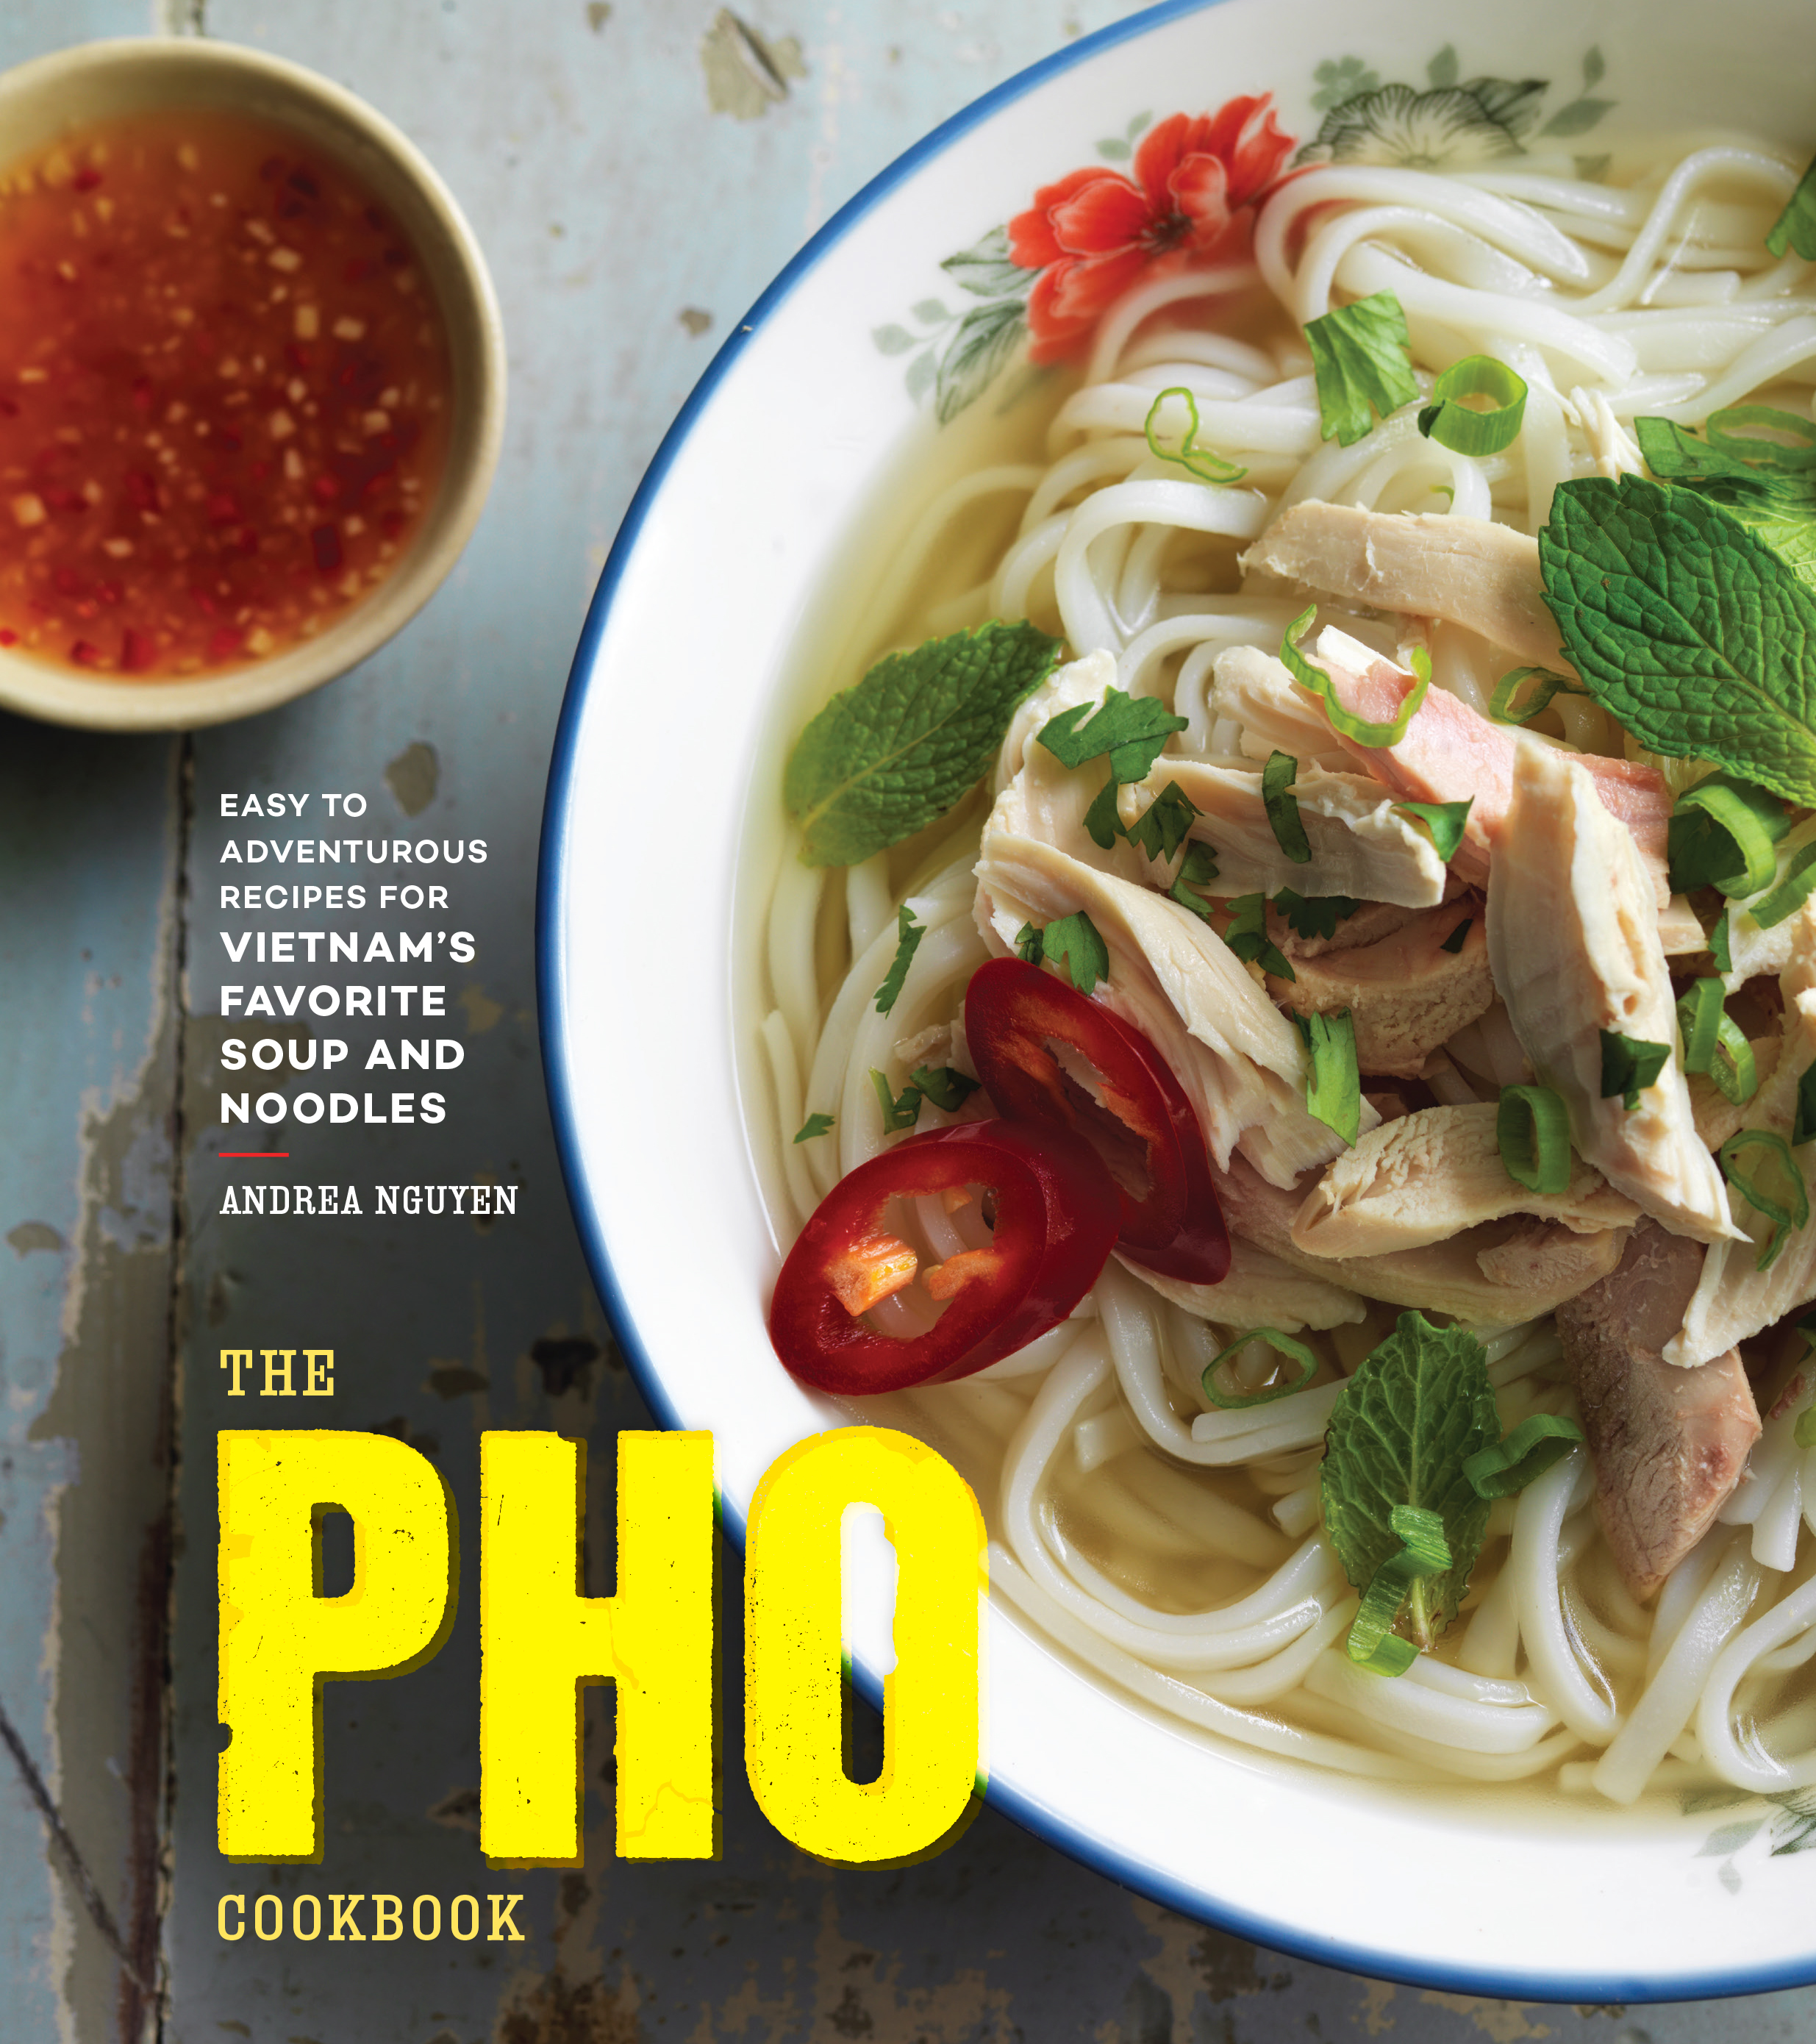 The Pho Cookbook: Interview with Andrea Nguyen